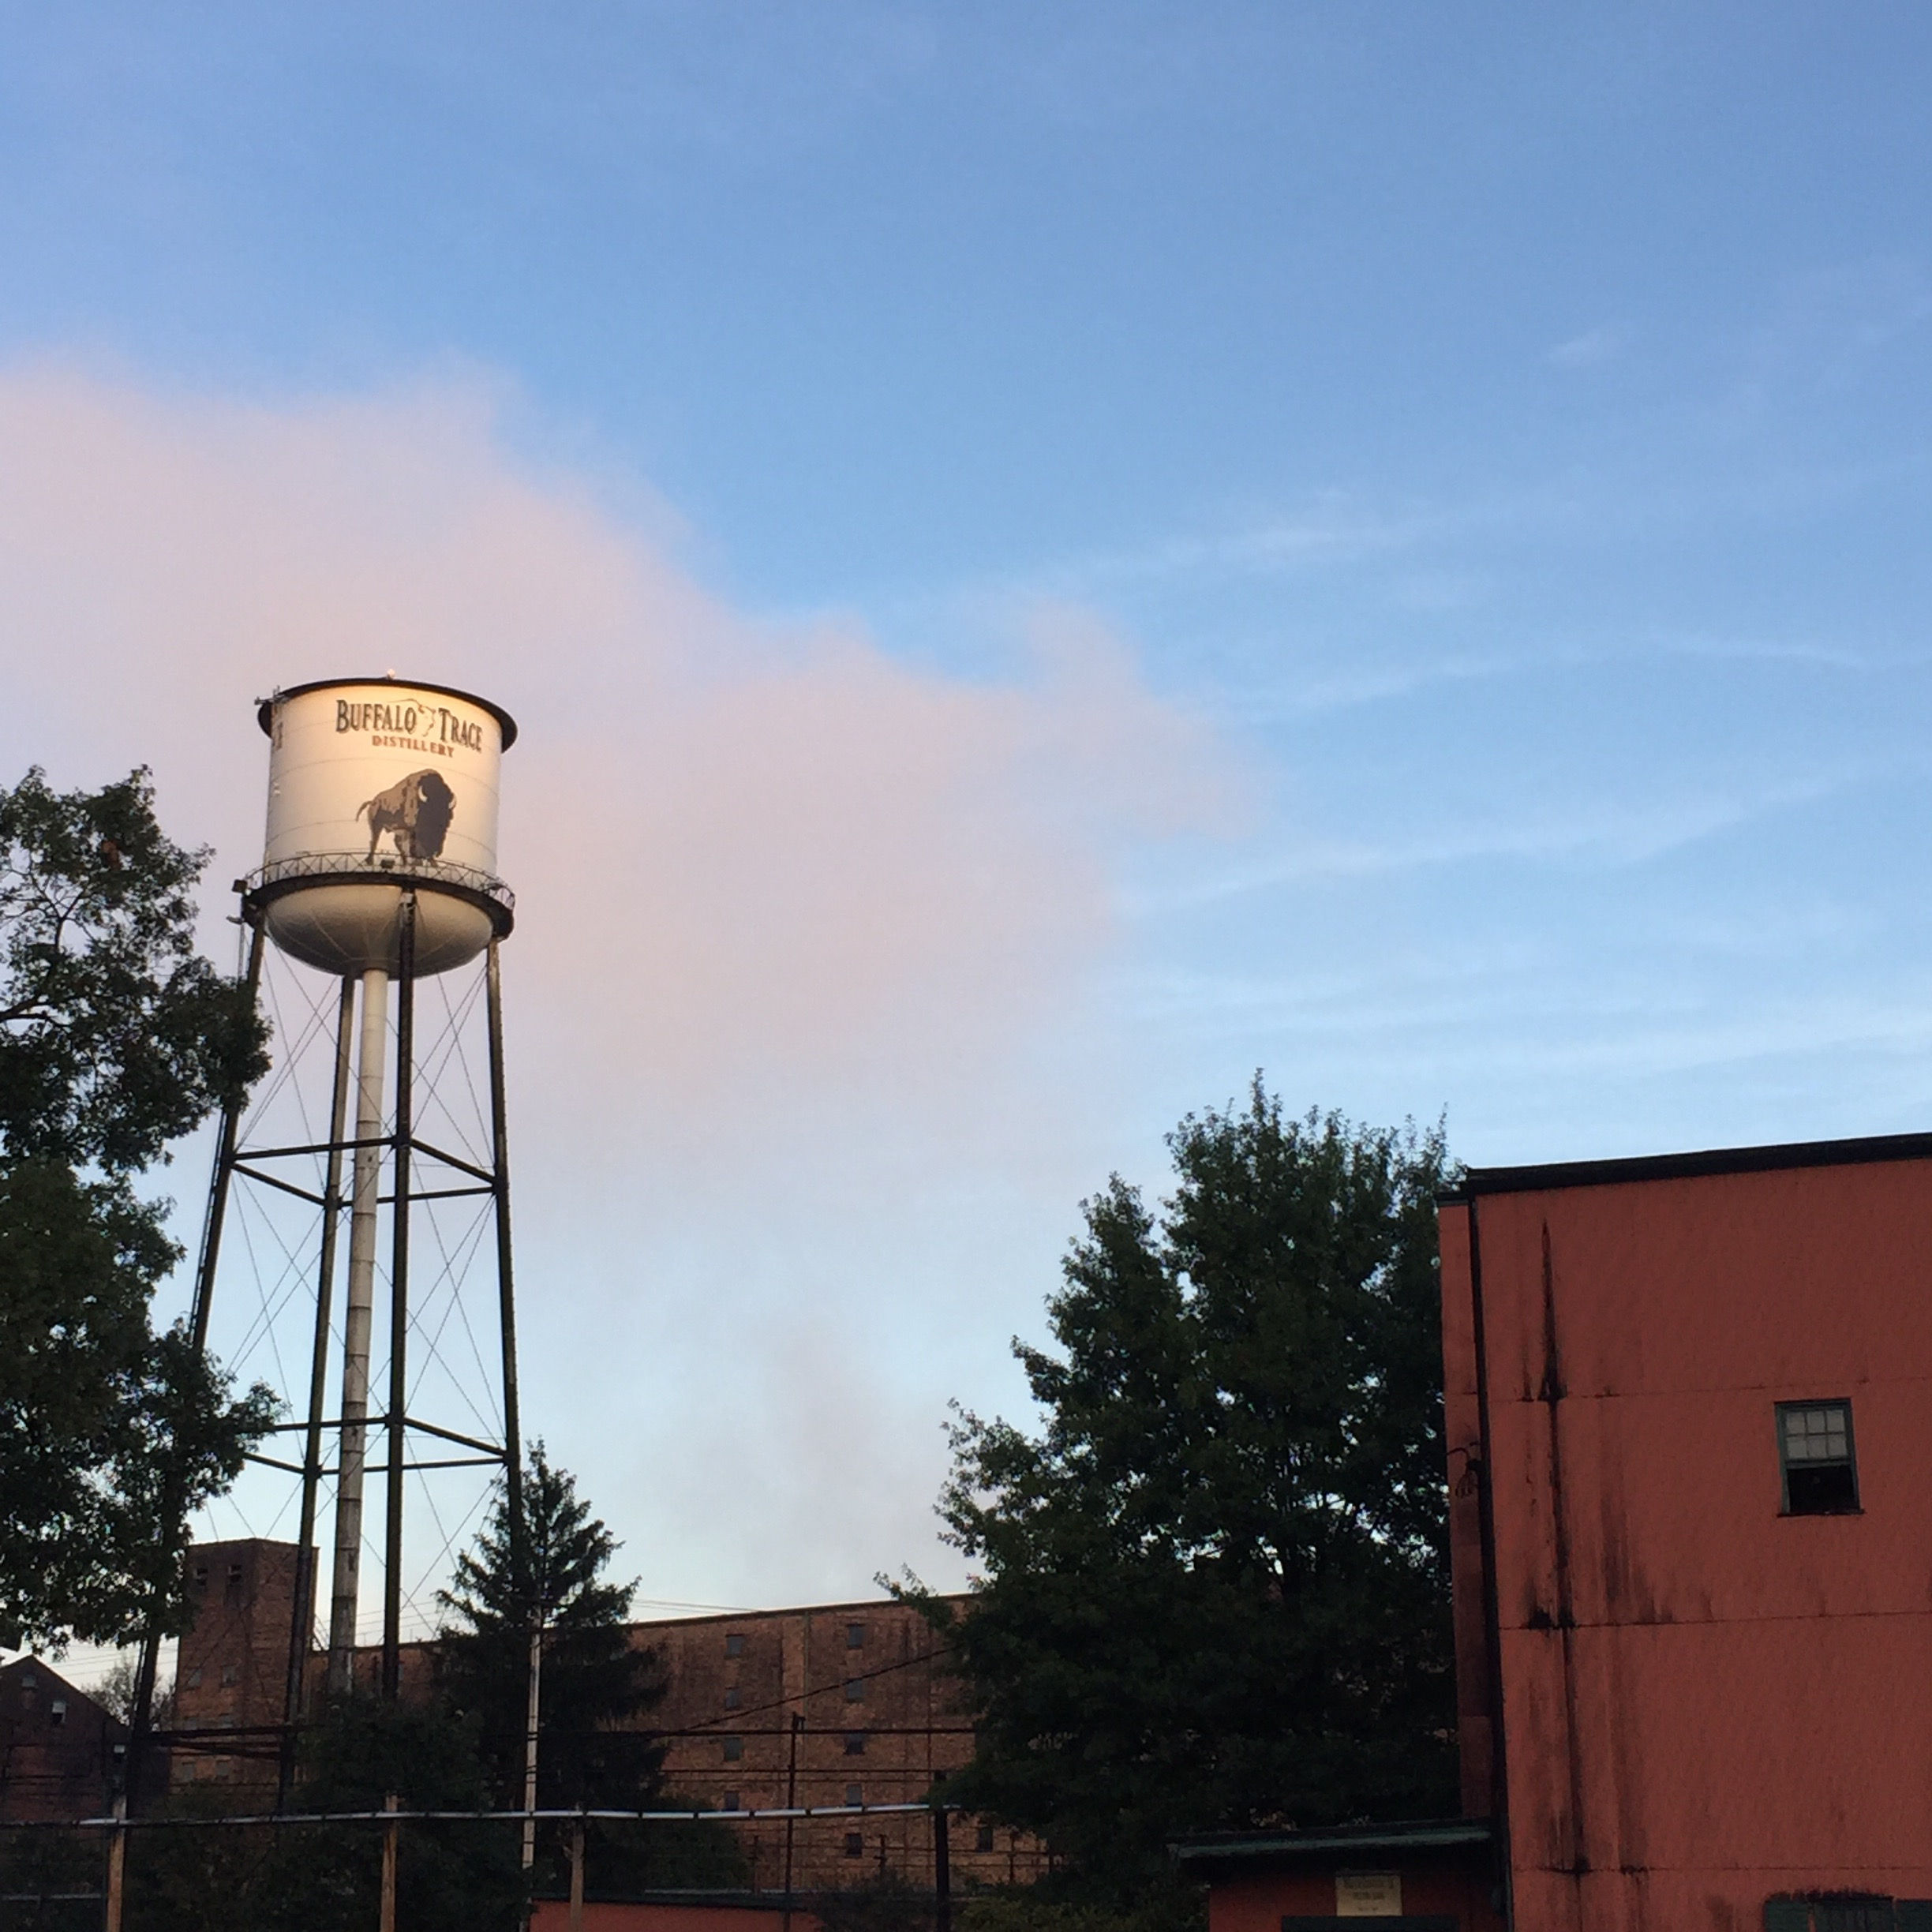 Bourbon has been produced on the grounds of Buffalo Trace Distillery for over 200 years. Located in Kentucky's state capital - Frankfort, KY - Buffalo Trace has a rich cultural heritage and is home to numerous well-loved bourbon brands enjoyed by folks around the world.